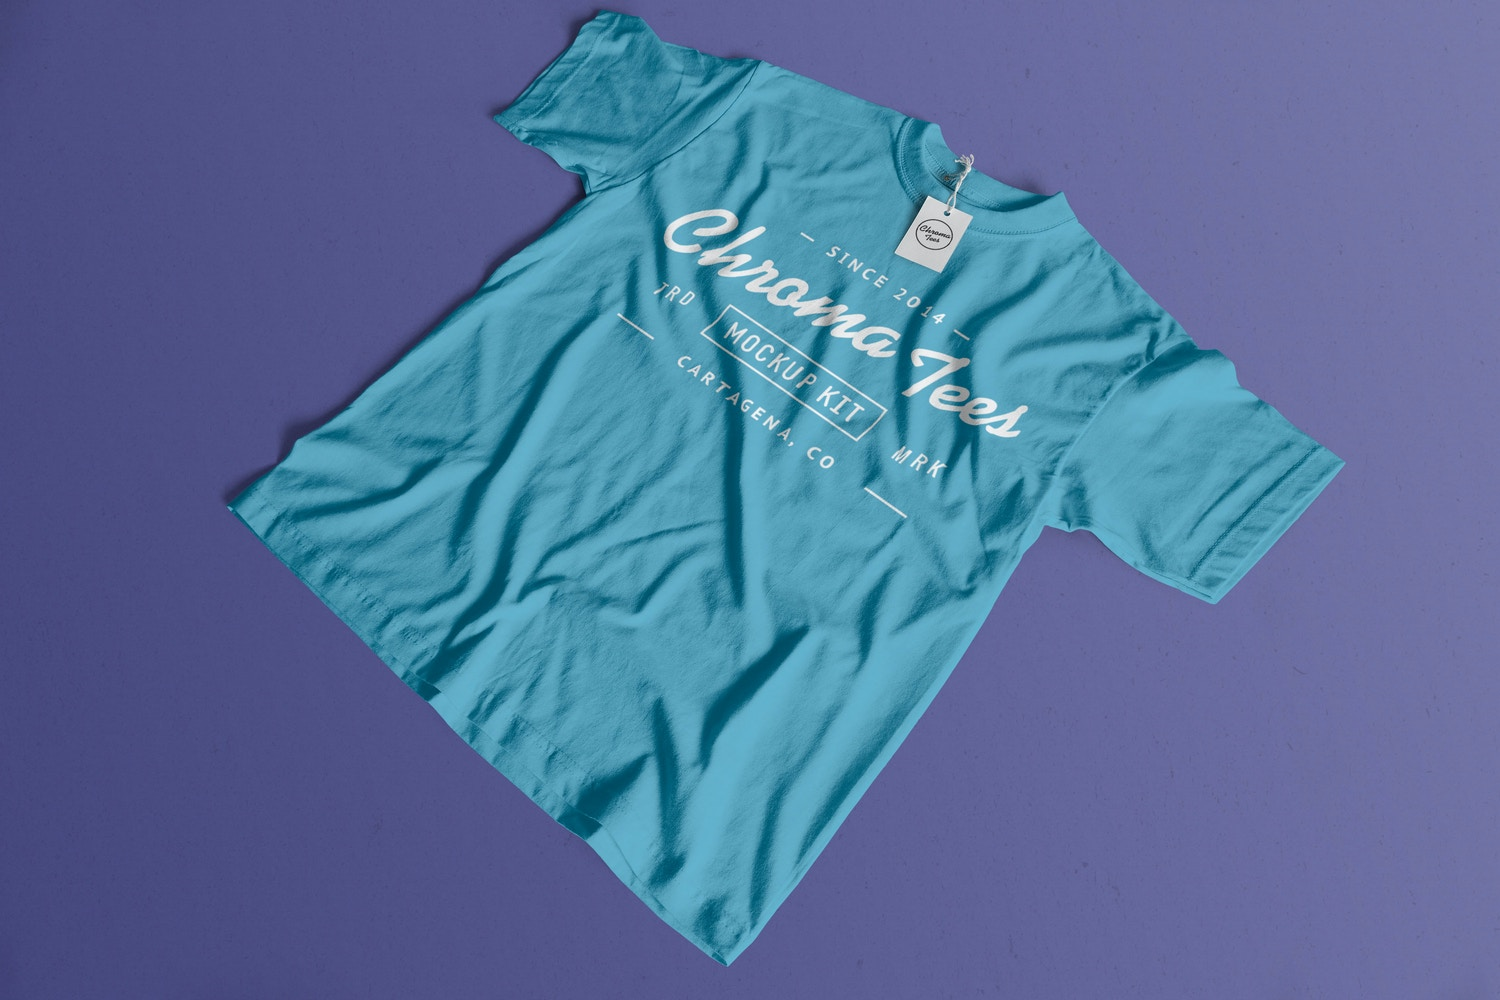 T-Shirt Mockup 02 (1) by Antonio Padilla on Original Mockups